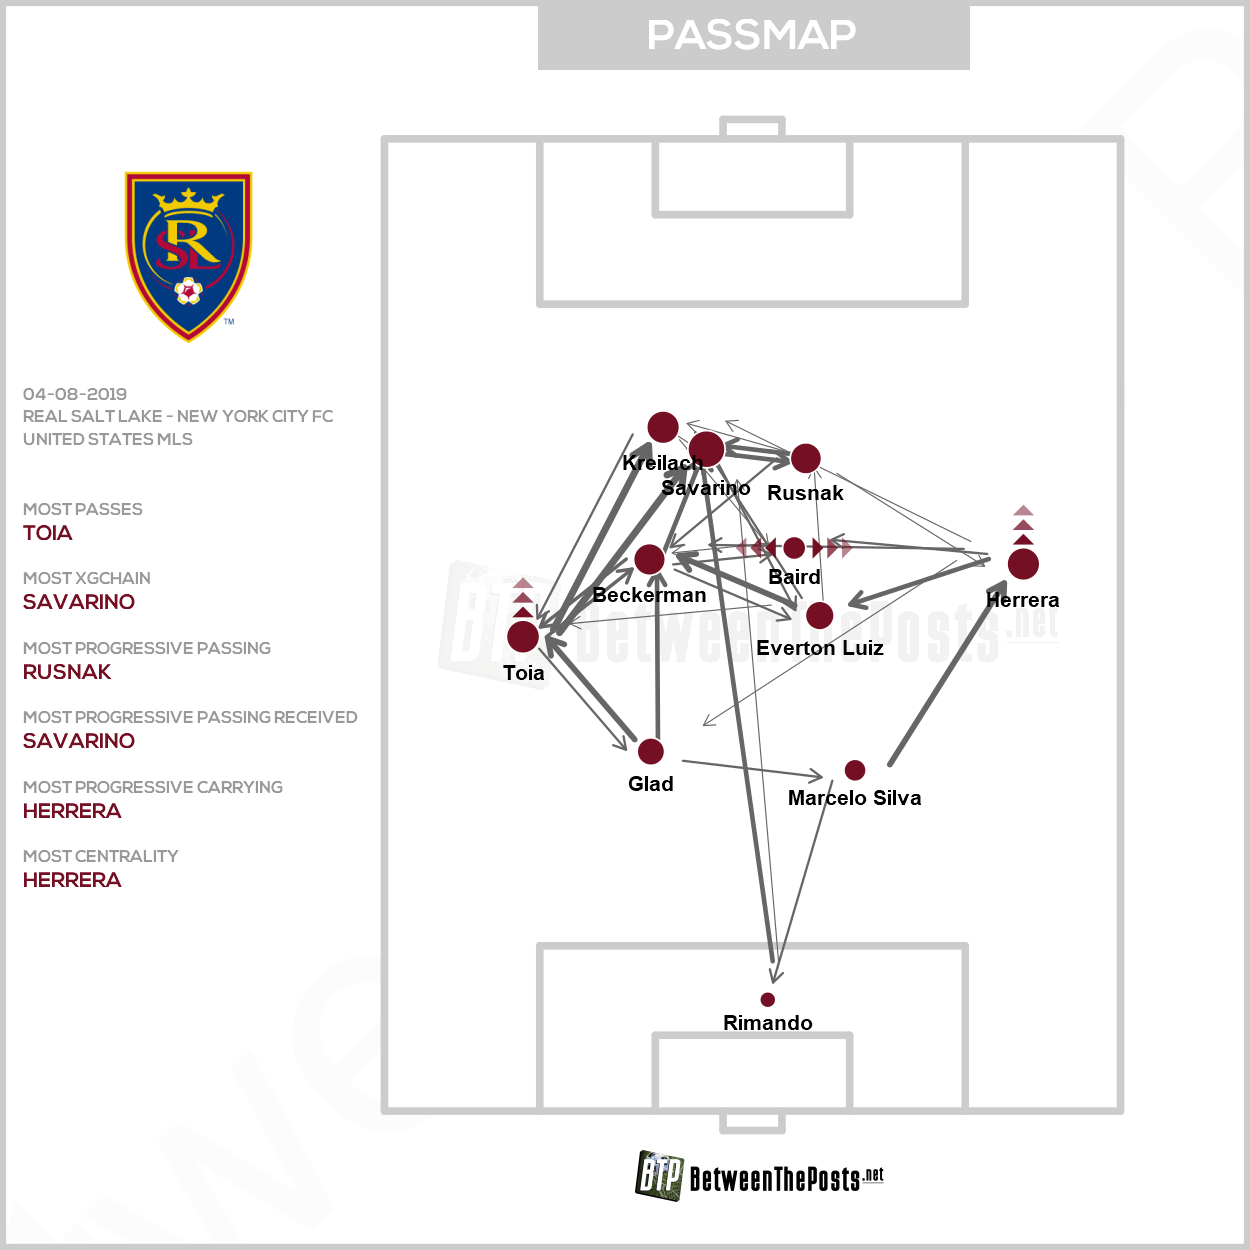 Passmap Real Salt Lake New York City FC 3-1 MLS